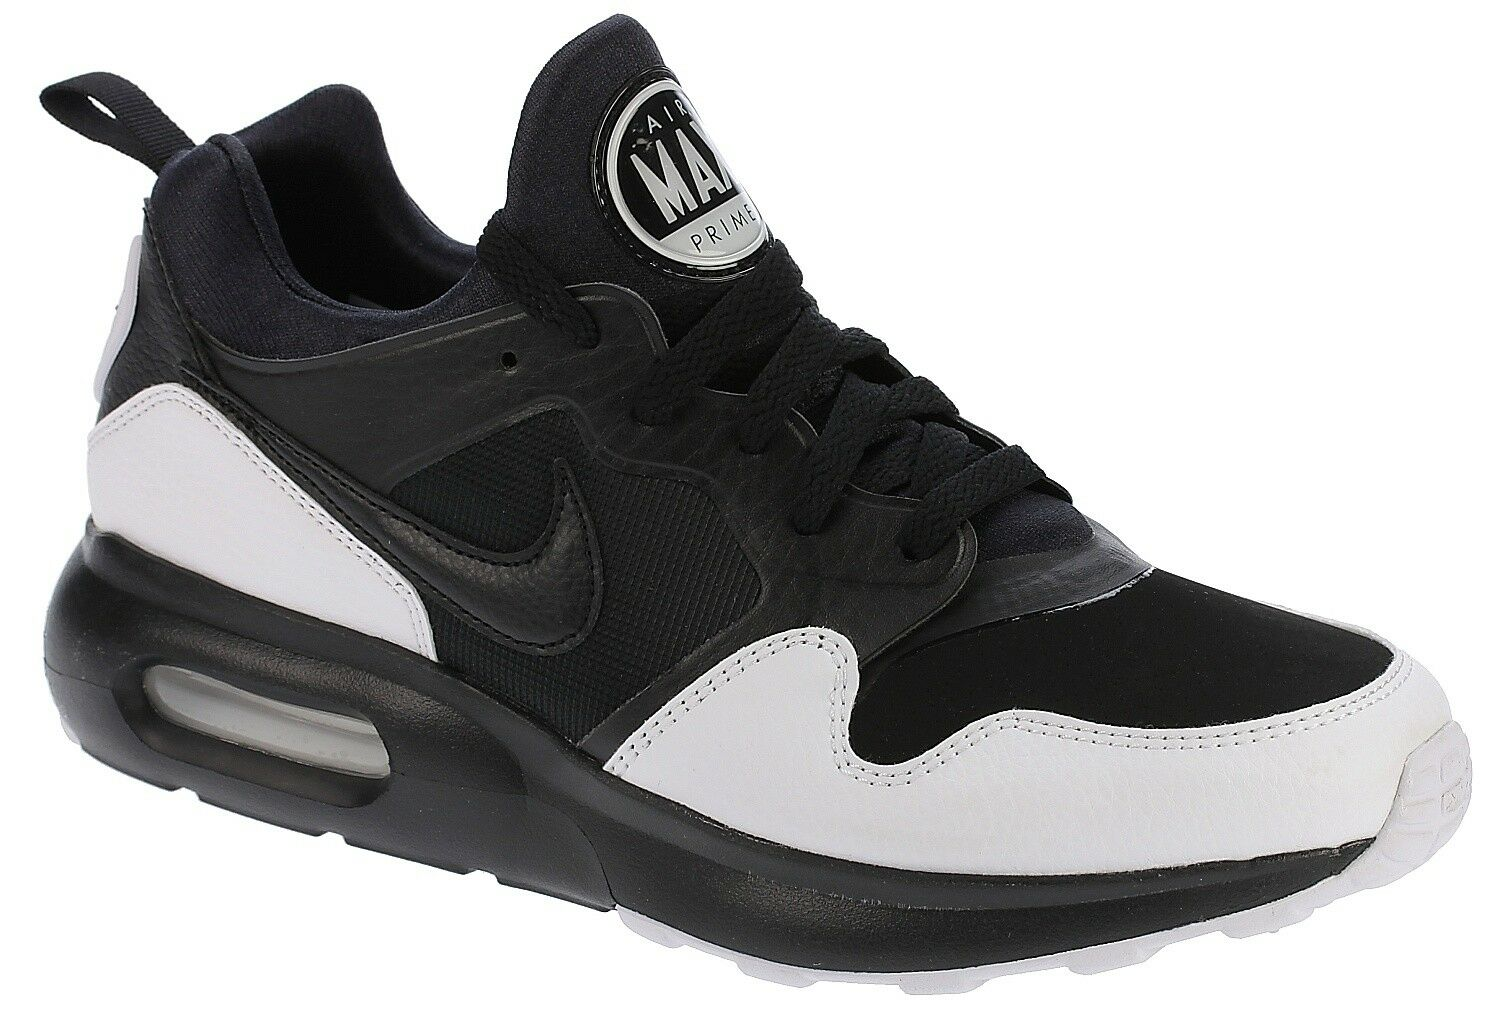 Nike Air Max Prime SL  Everyday Everyday Everyday fonctionnement Trainers10 EUR 45 7fca7a